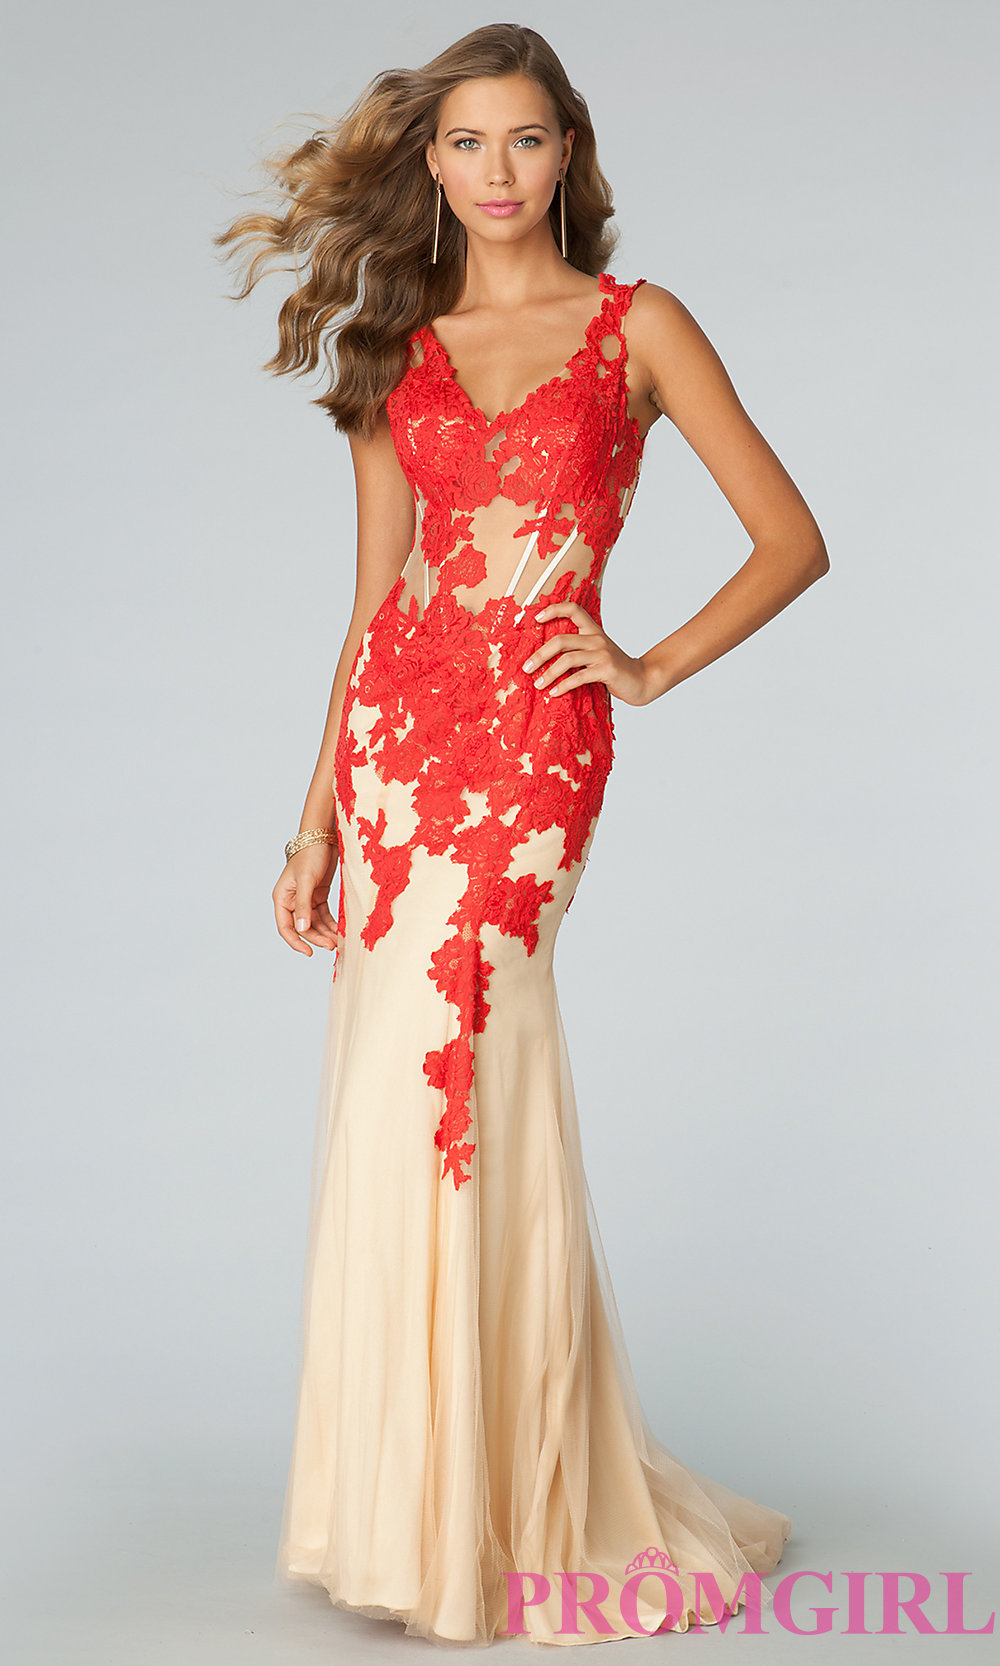 Red Lace Prom Dress Jovani – Fashion dresses